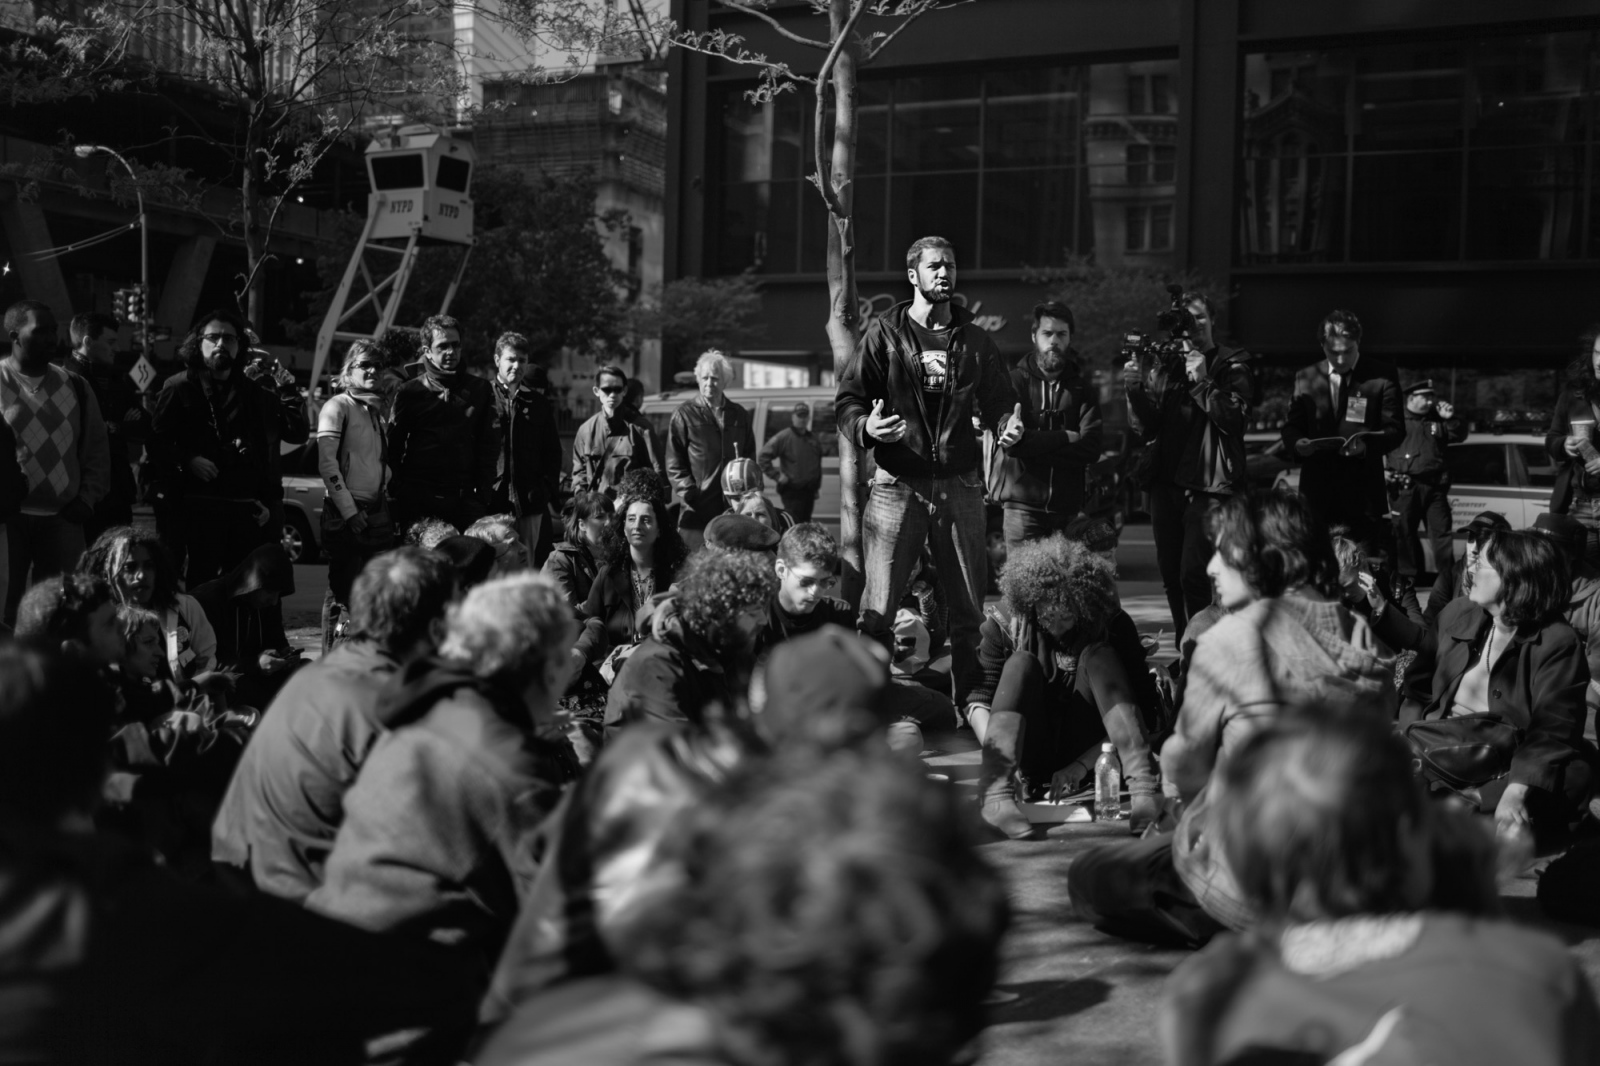 An OWS organizer gives instructions and guidlienes to protestors at Zuccotti Park.